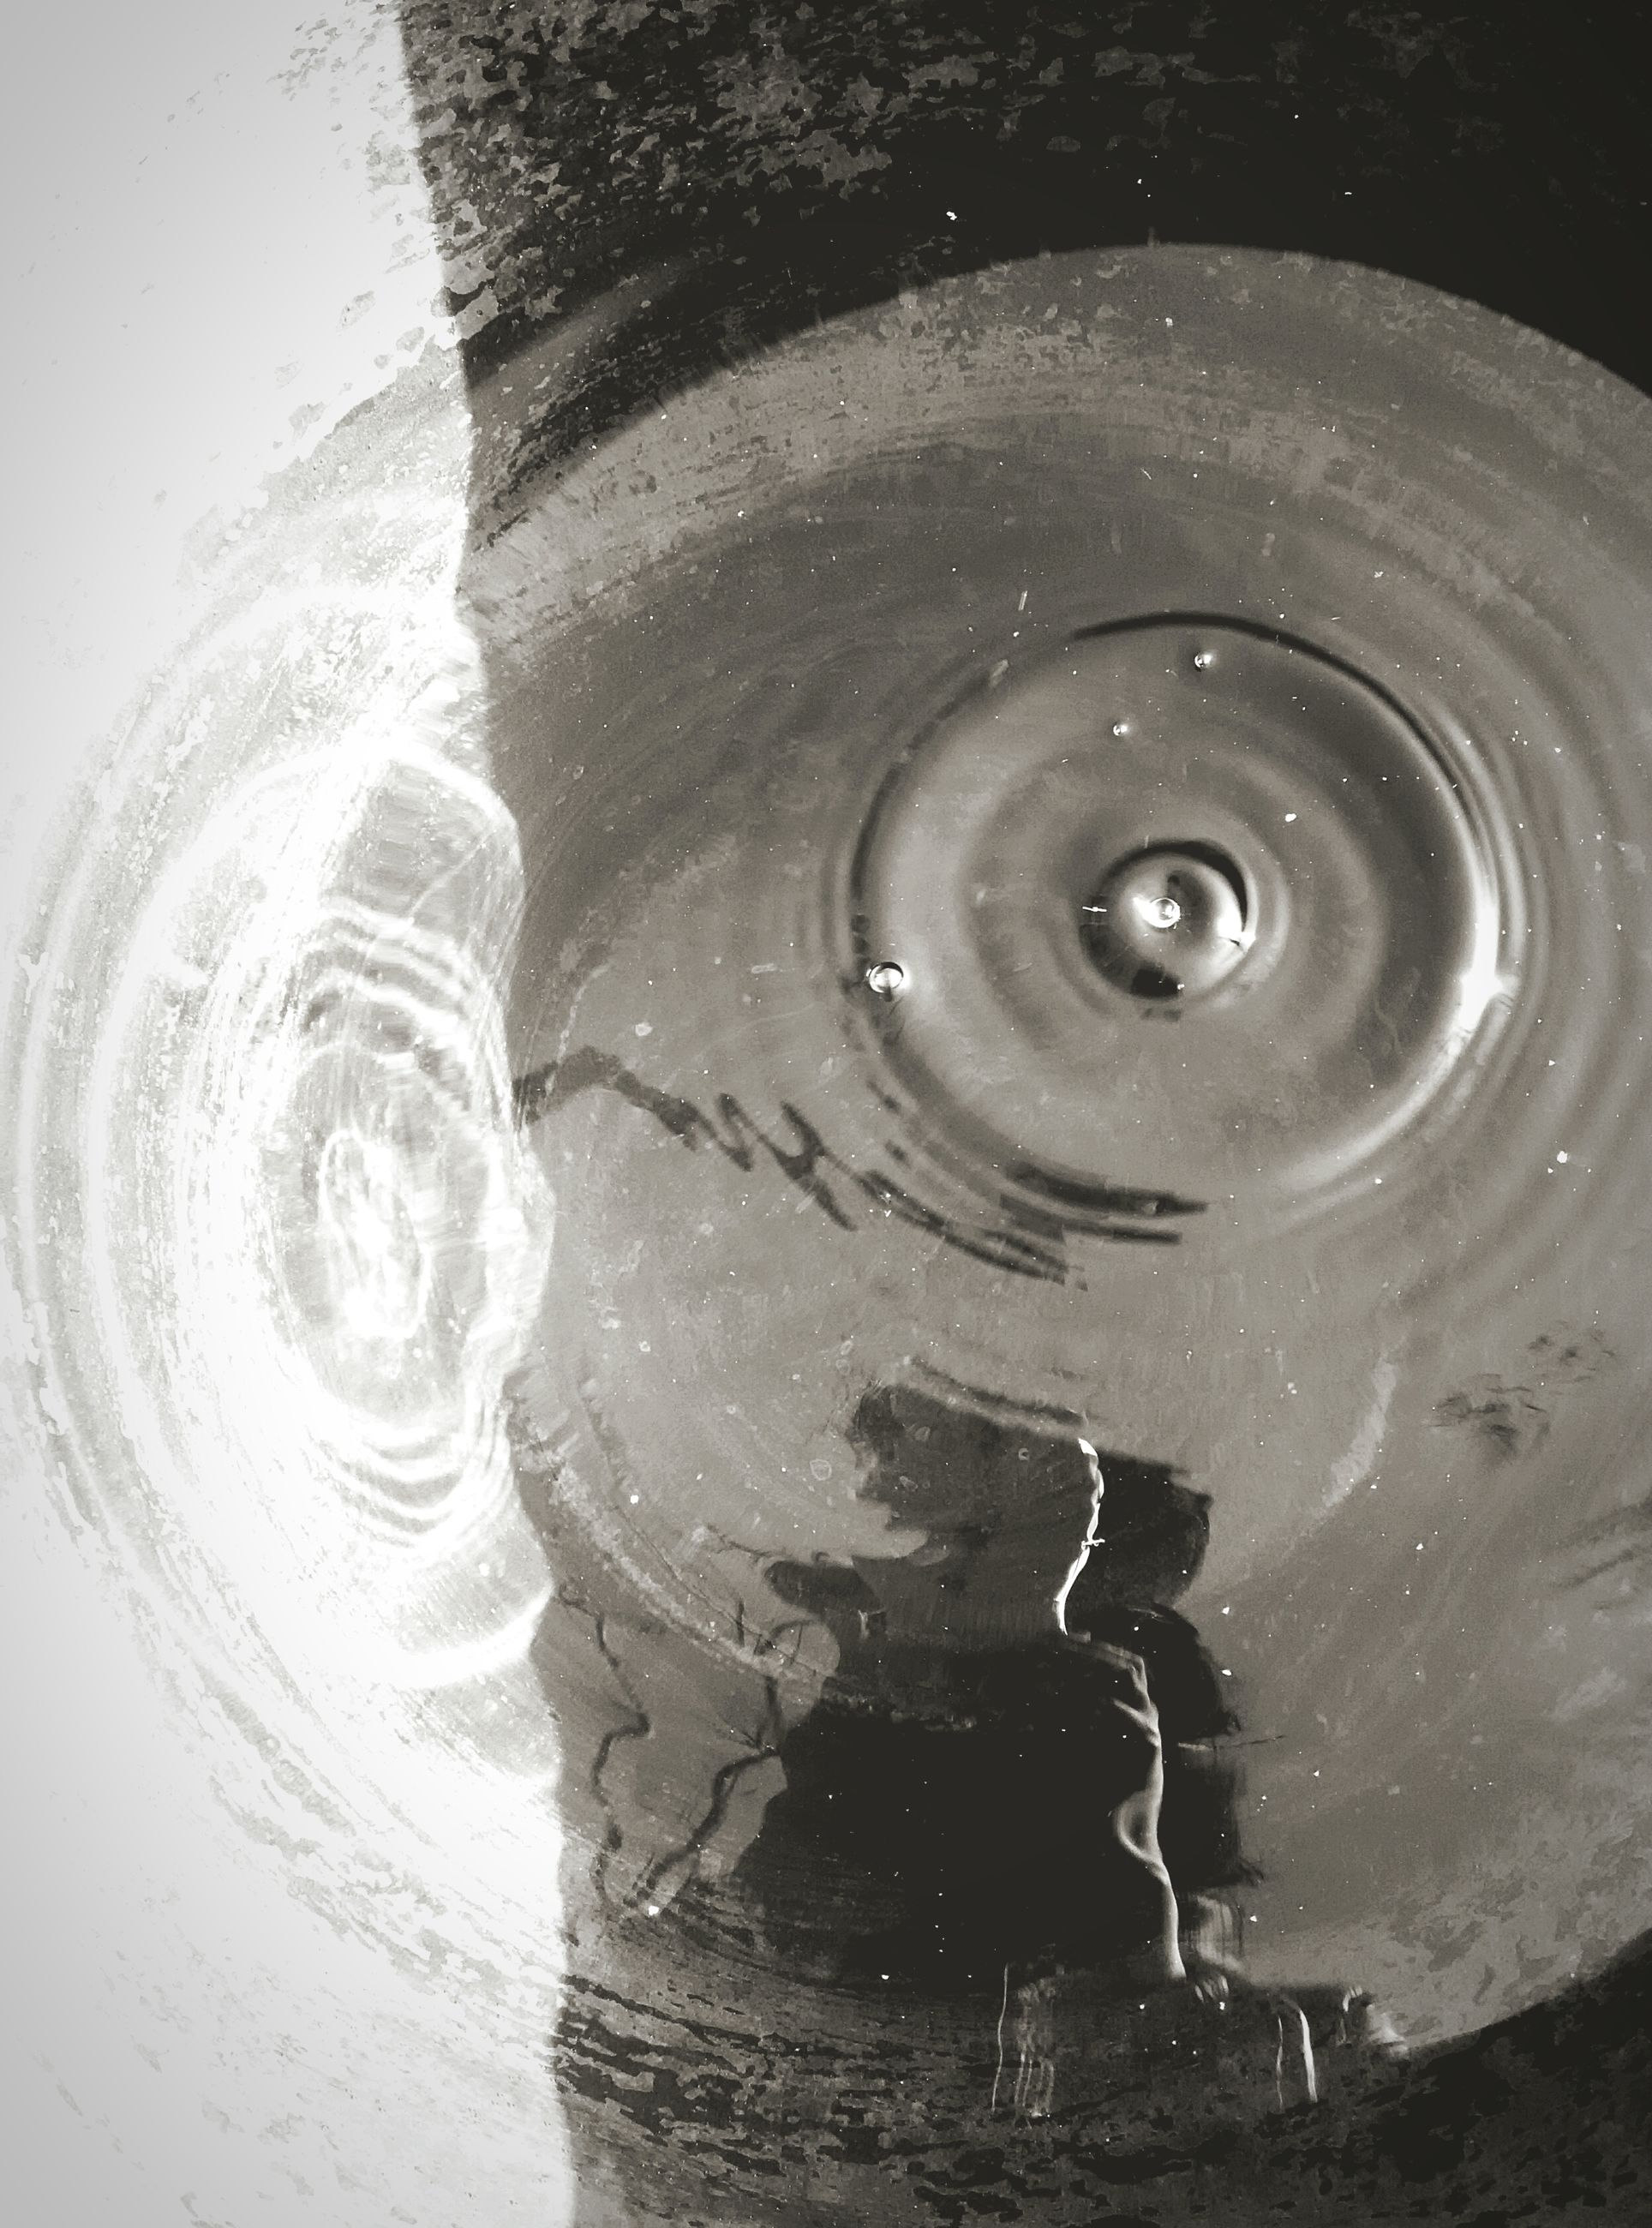 water, reflection, close-up, high angle view, waterfront, wet, rippled, drop, no people, old, day, puddle, metal, outdoors, circle, purity, fountain, part of, built structure